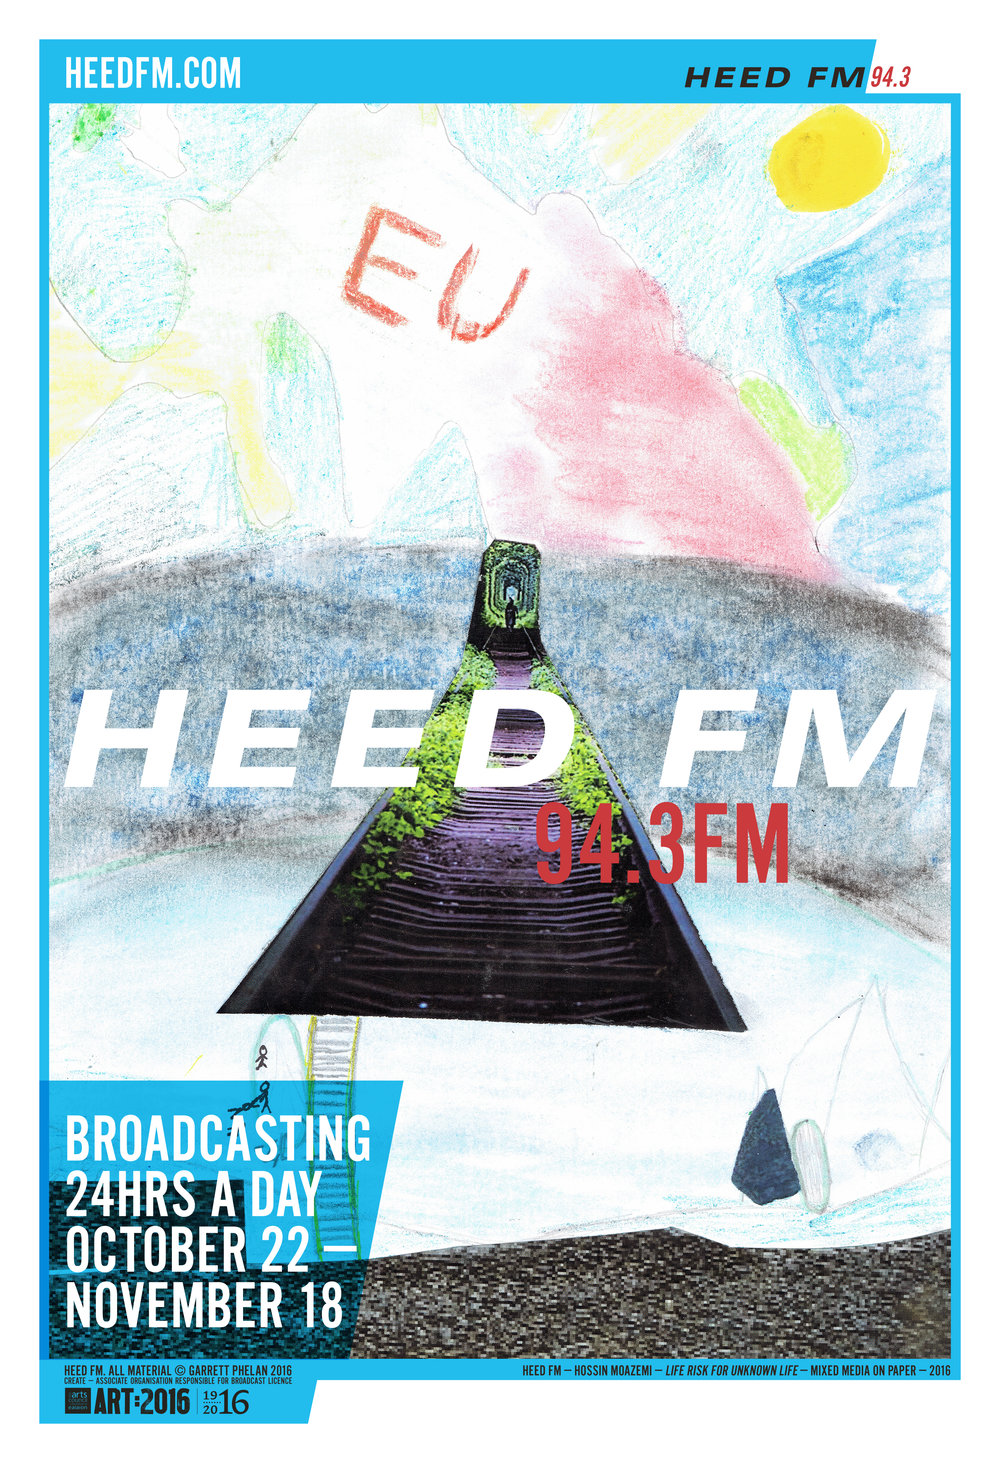 heed fm 4 sheets artwork-7.jpg